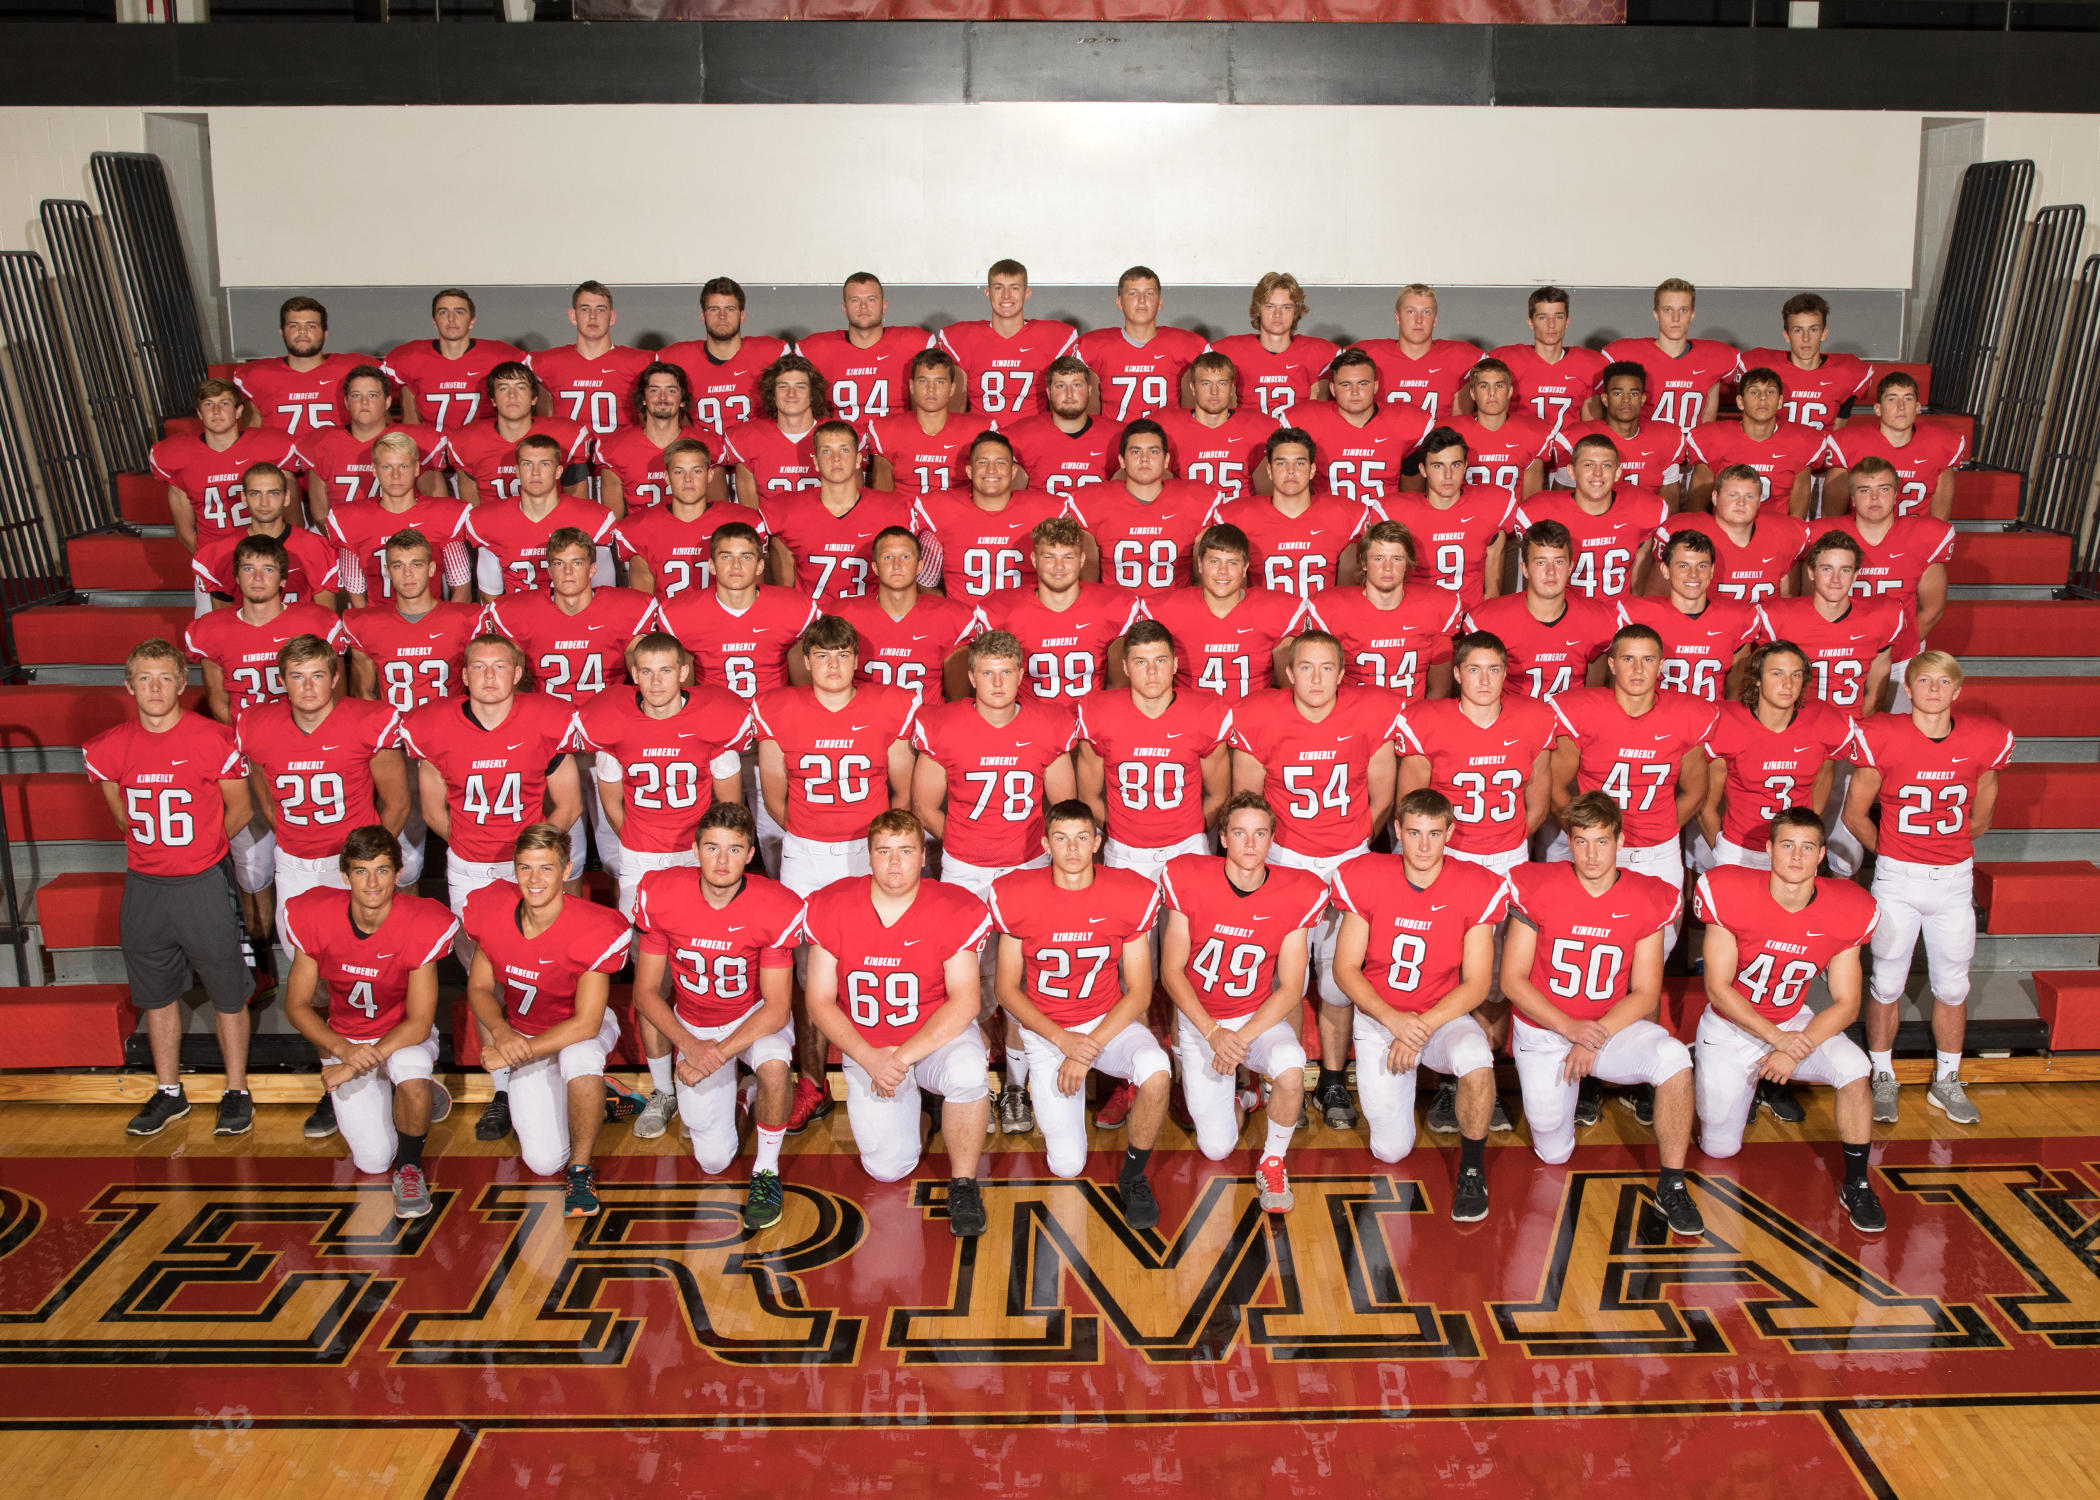 Kimberly Varsity Football Team Picture